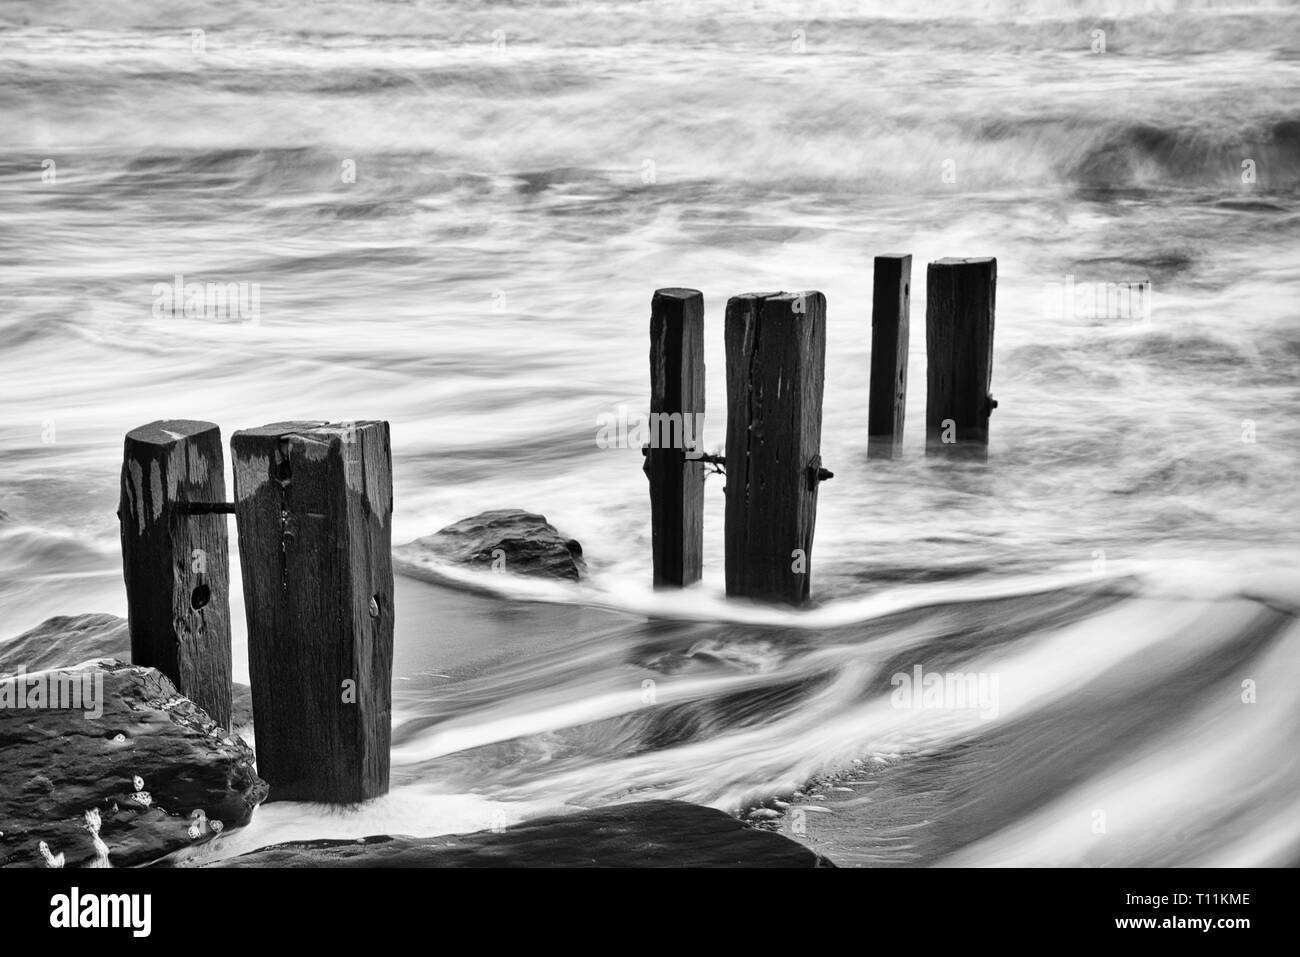 A rough incoming tide breaks against groynes and rocks - Stock Image